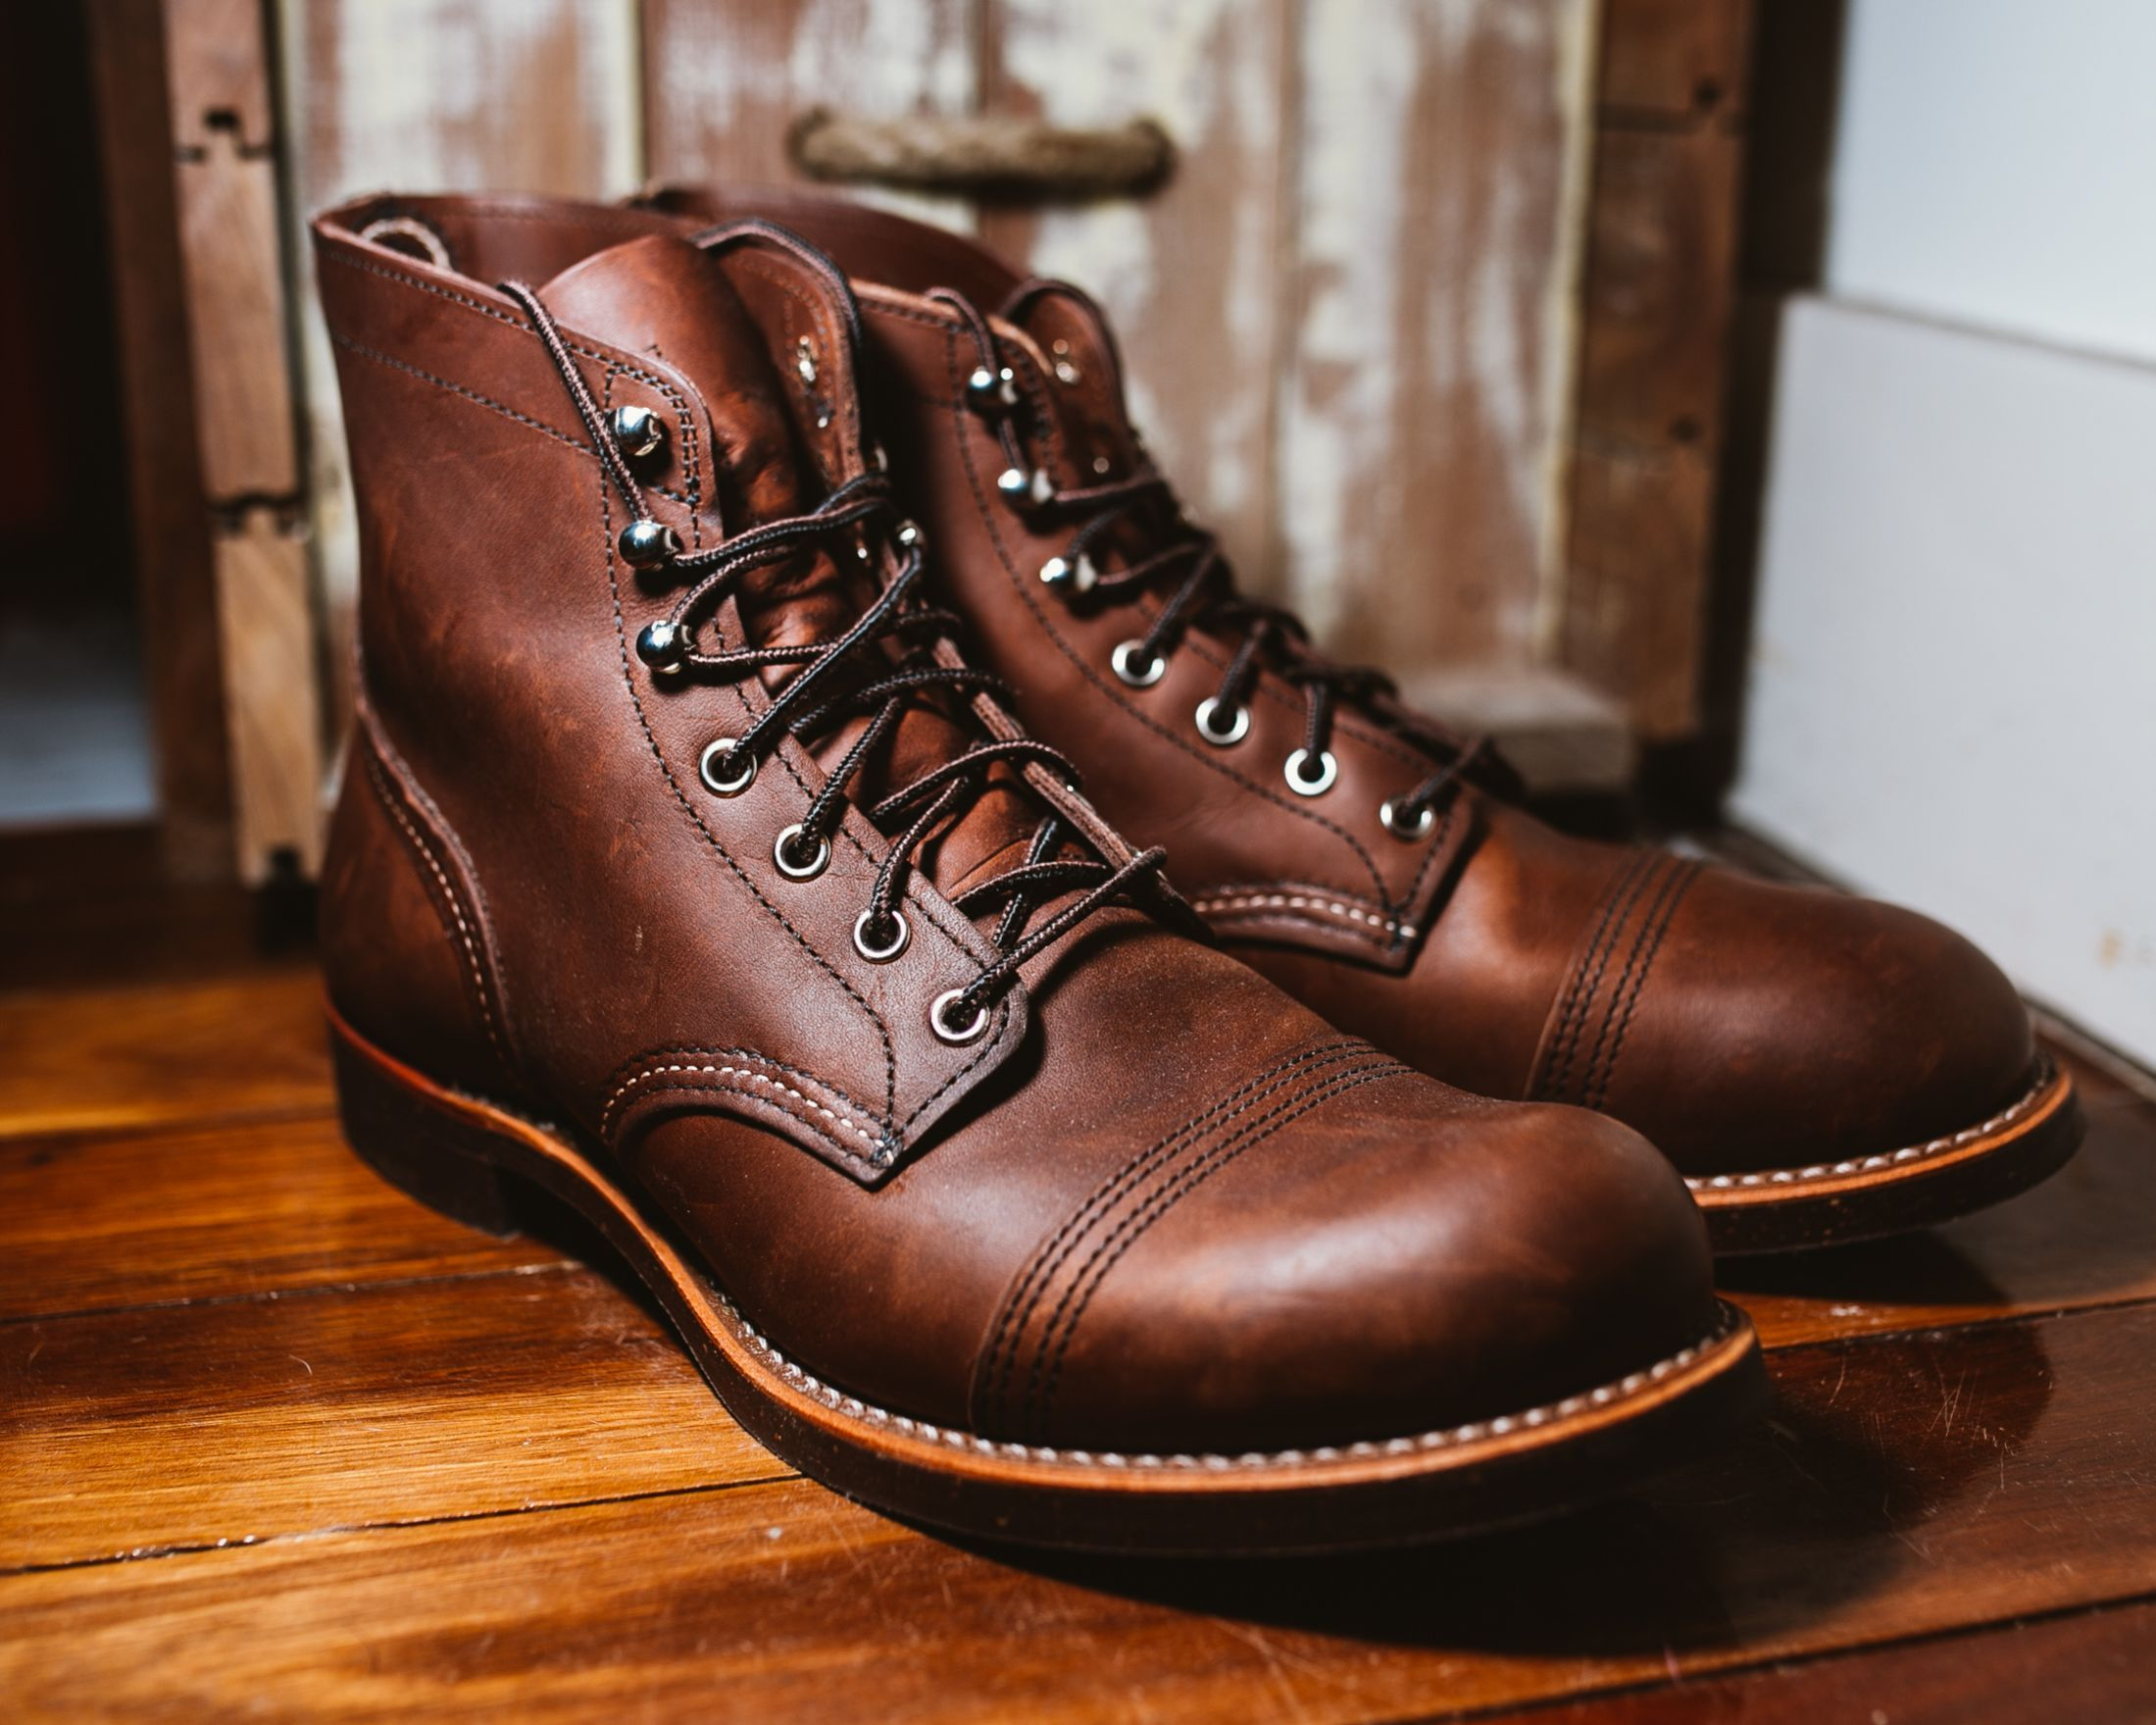 Red Wing Iron Ranger #8111 in Amber Harness Leather | Boots ...